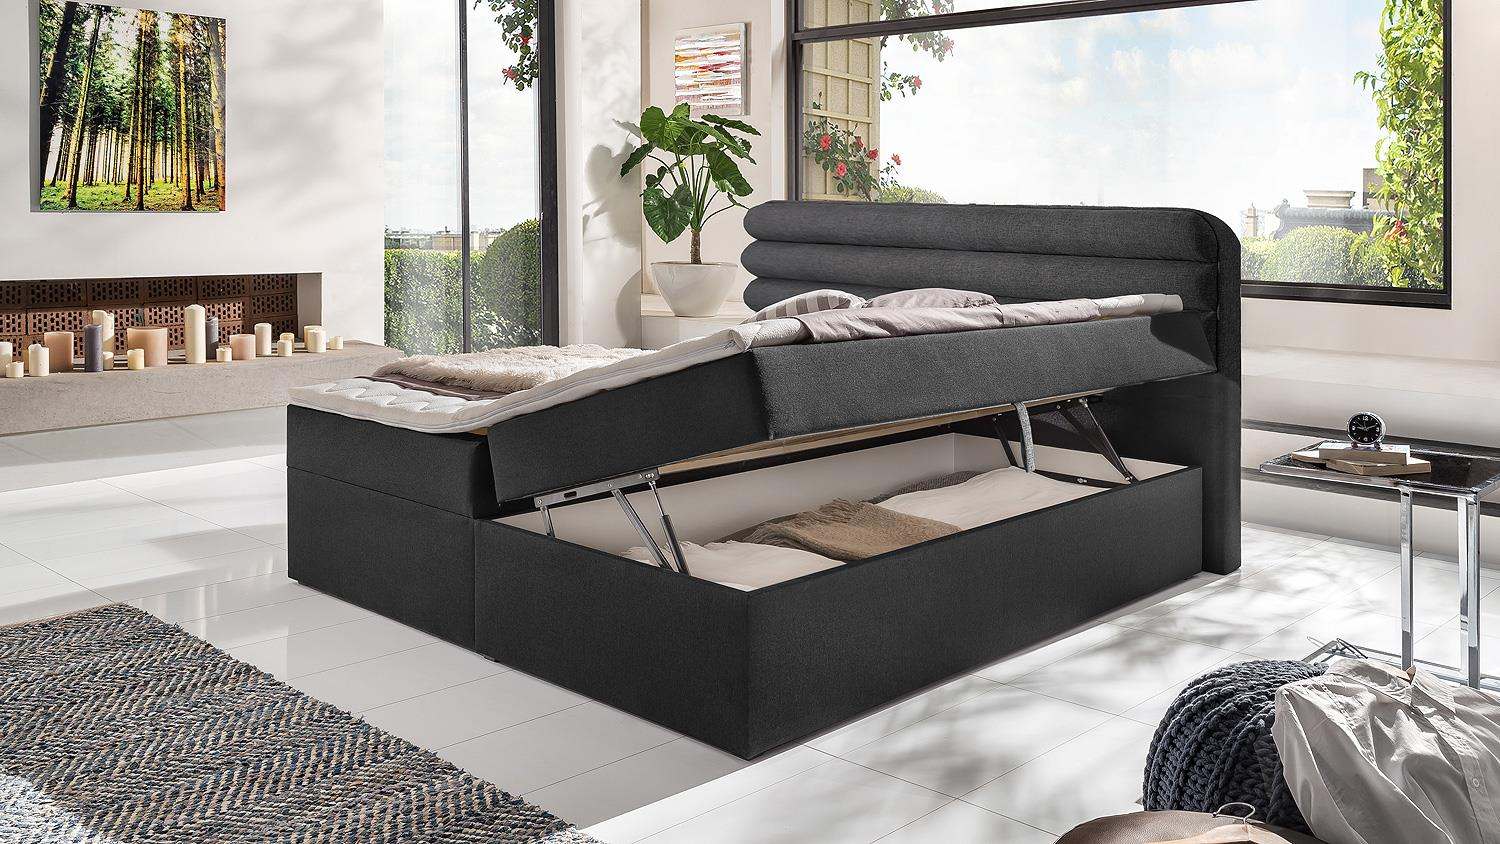 doppelbett malloca funktionsbett stauraum federkernbox mit. Black Bedroom Furniture Sets. Home Design Ideas